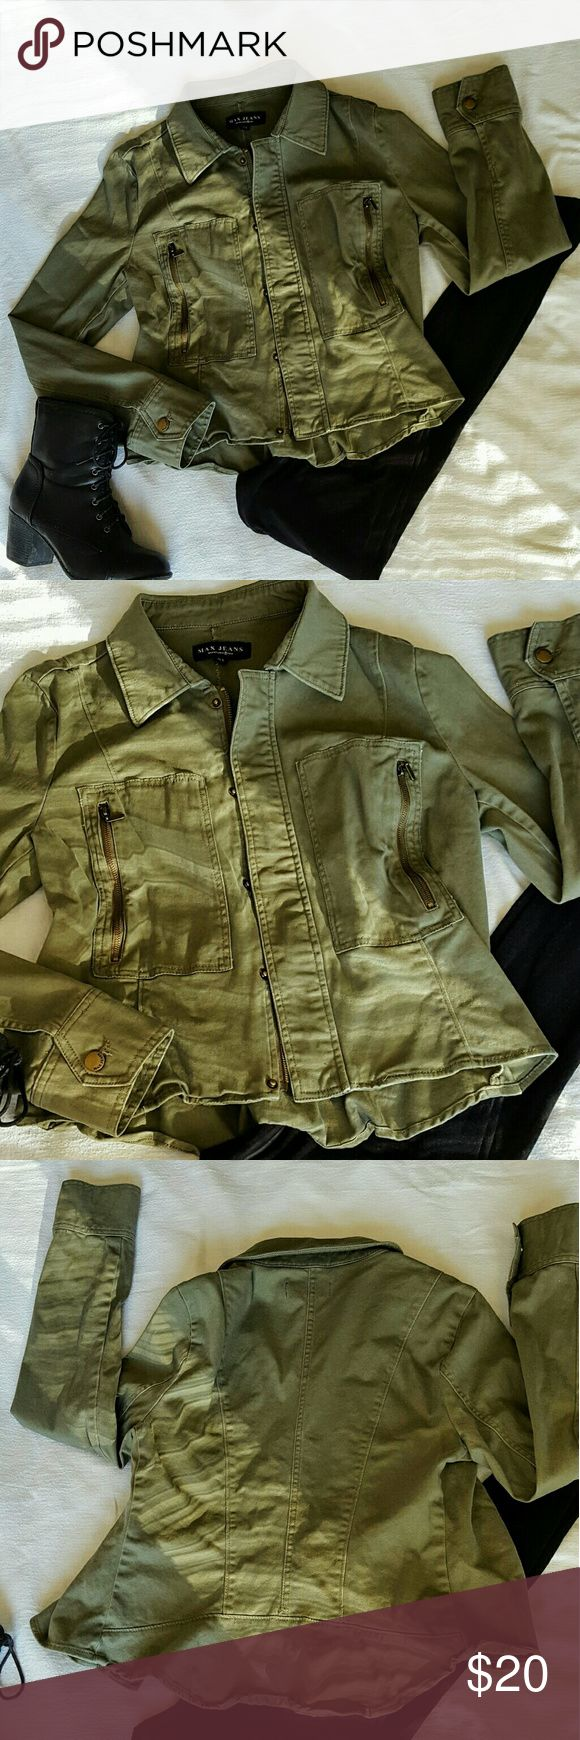 Max Studio Military Jacket Super cool army green jacket with zip and snap closure. Slight peplum gather in back adds feminine flare! Side pockets with zippers Max Studio Jackets & Coats Utility Jackets